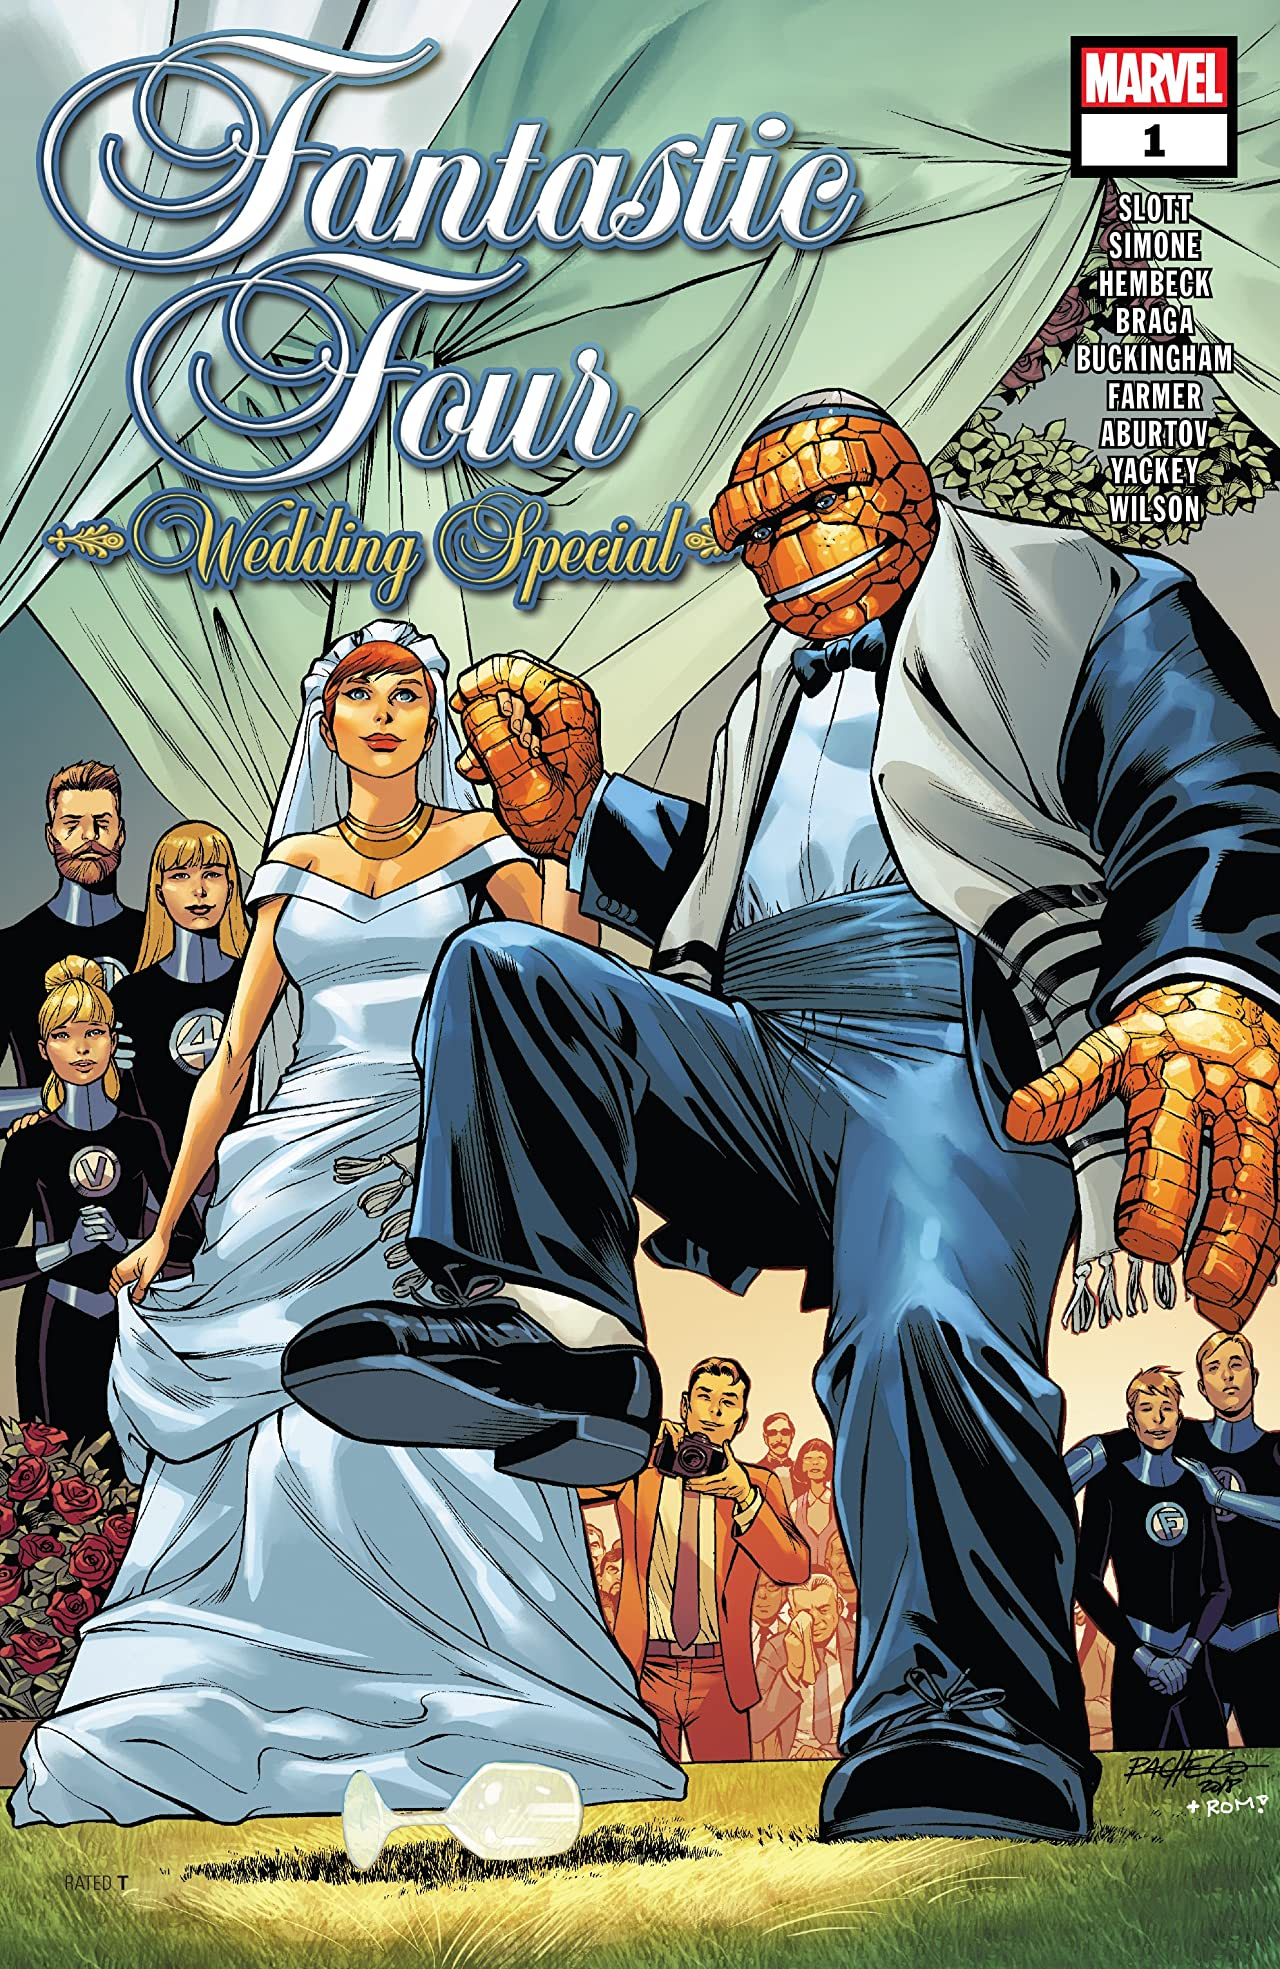 Fantastic Four: Wedding Special (2018) No.1